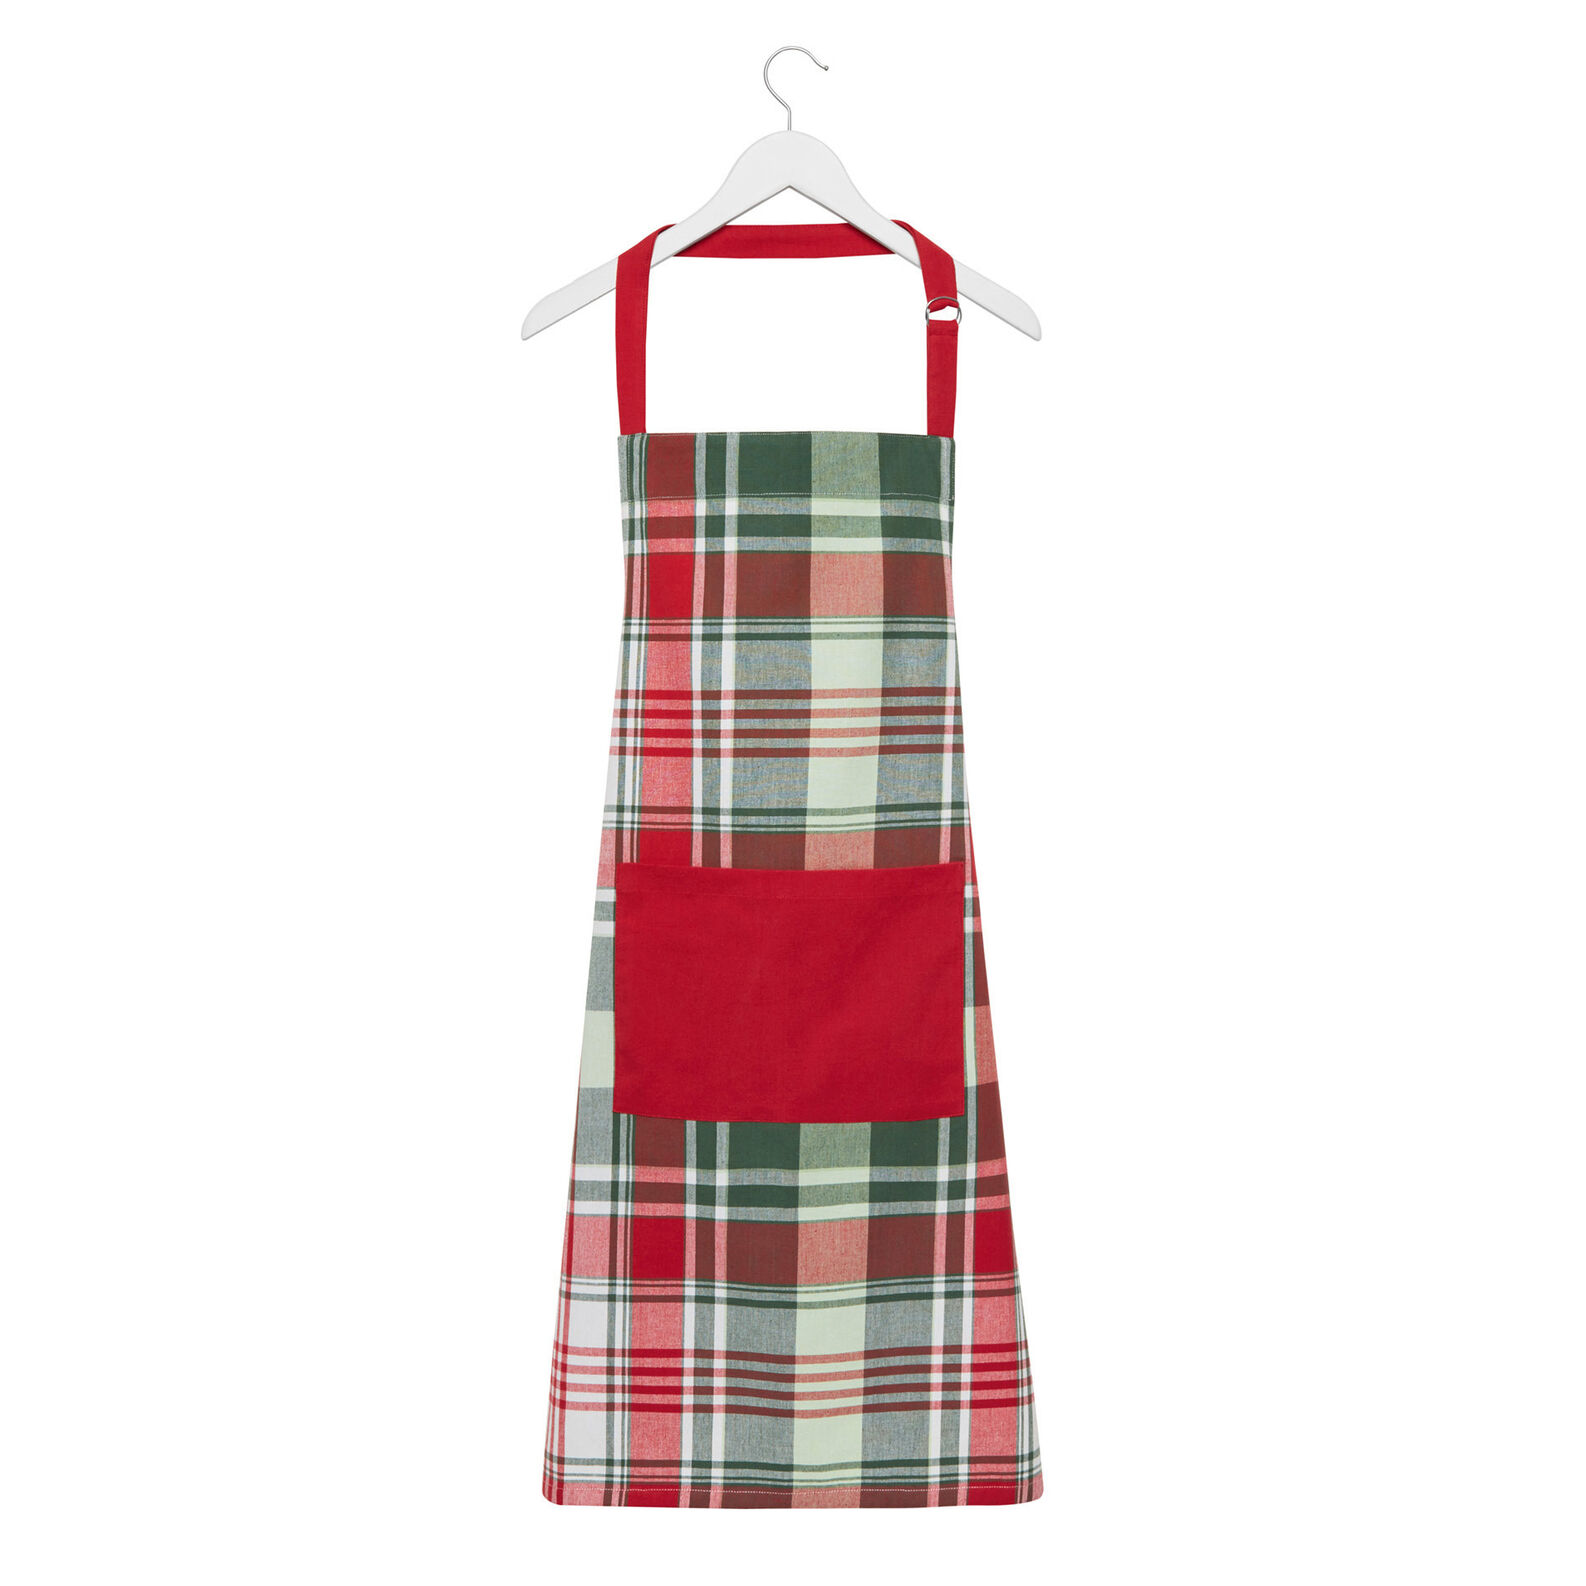 Yarn-dyed kitchen apron in 100% cotton with check motif